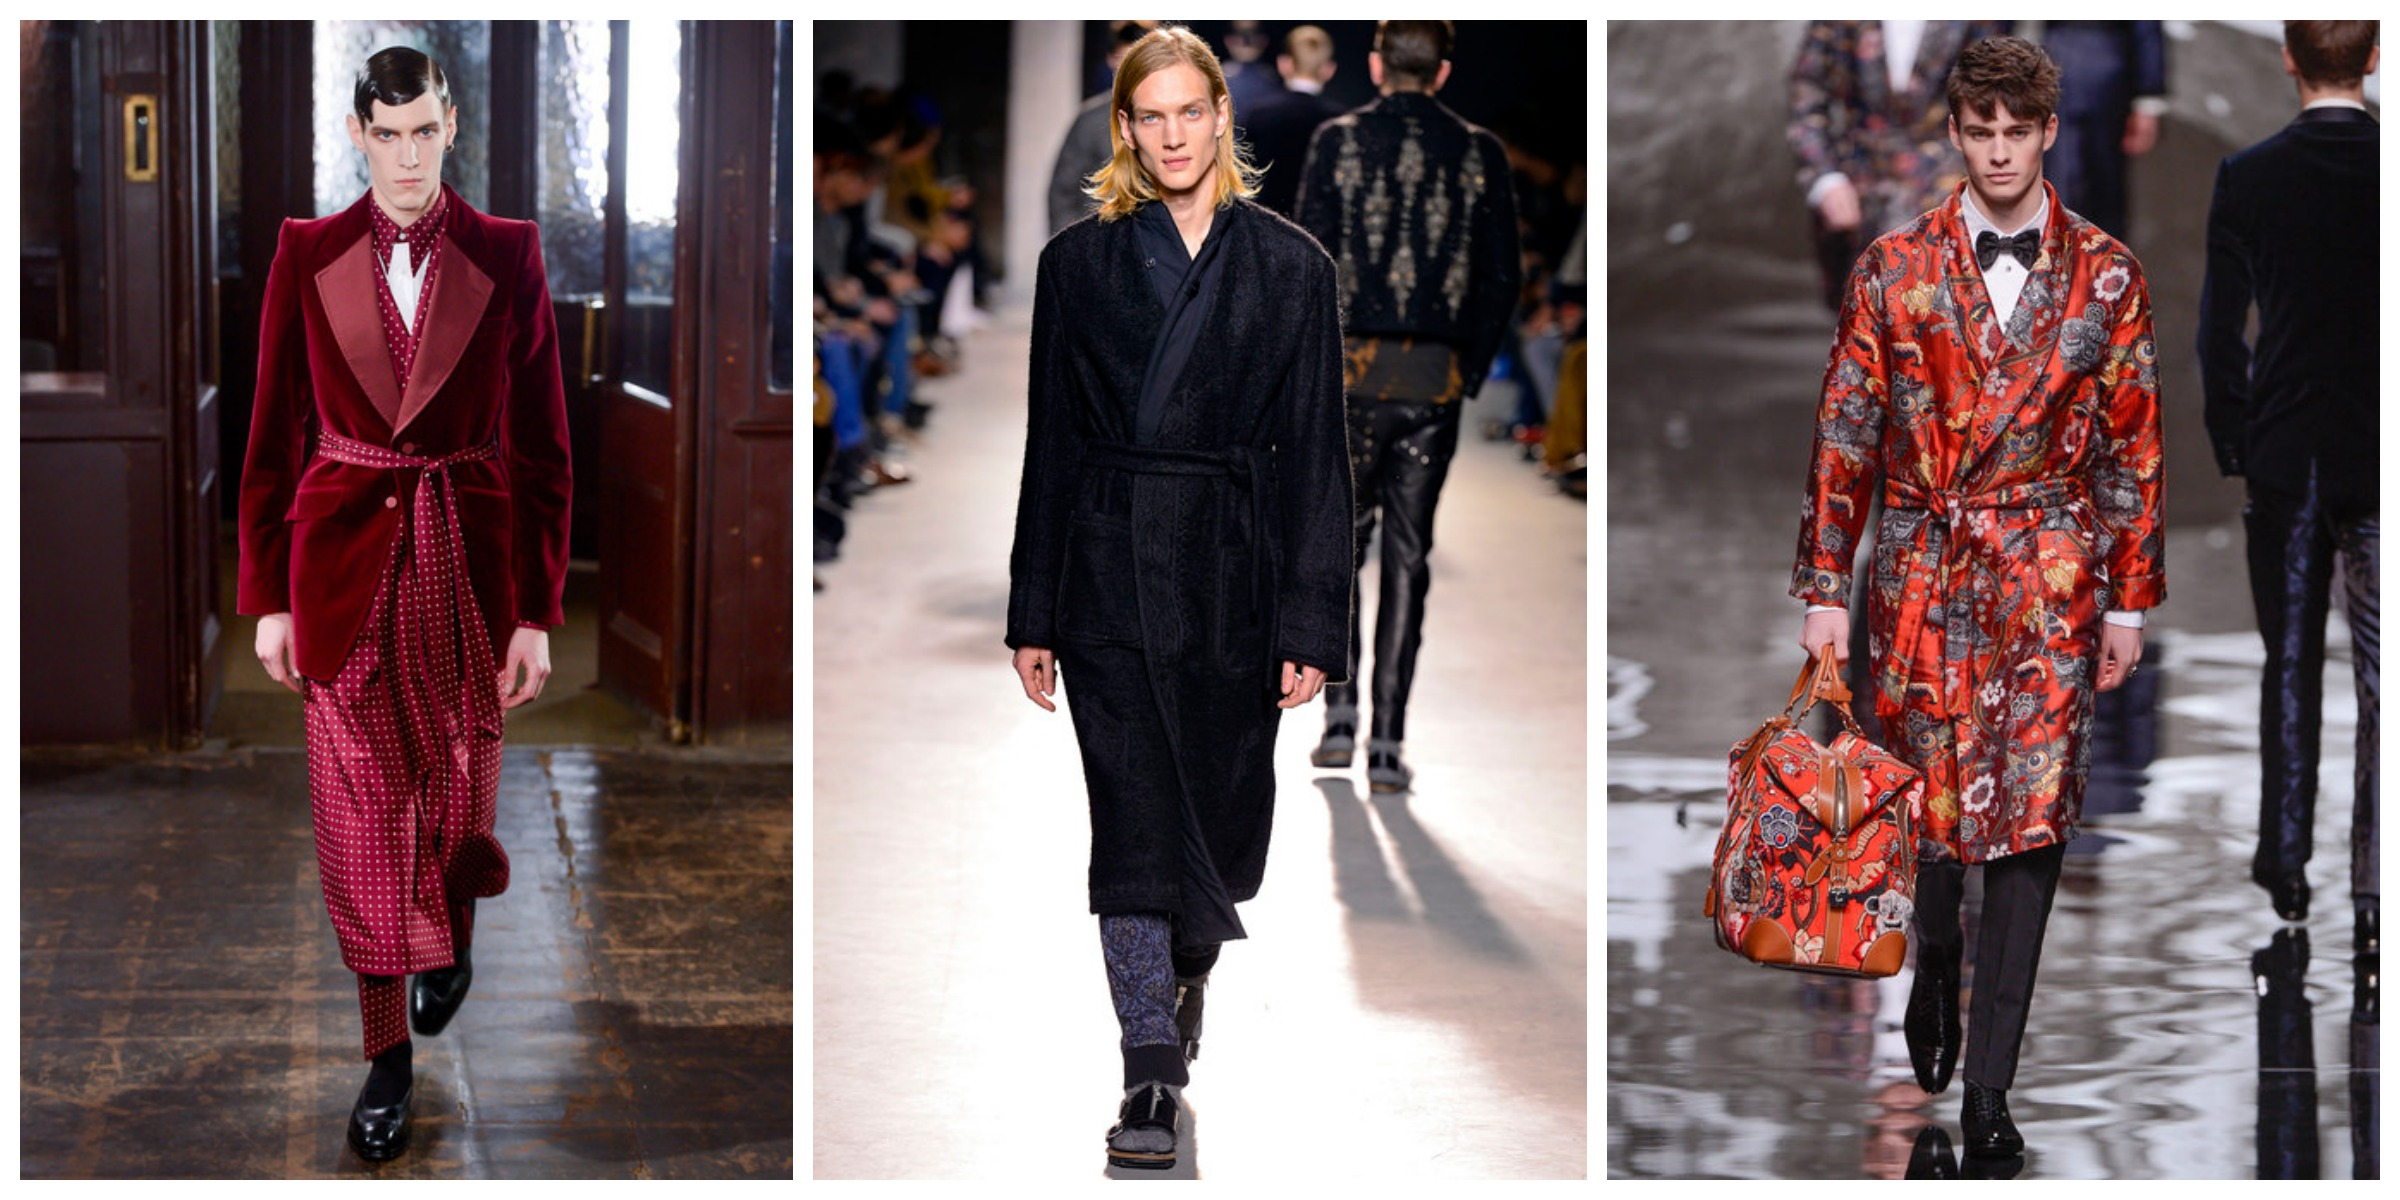 Pajama Party Lead Dries Van Noten Alexander McQueen Louis Vuitton Fall 2013